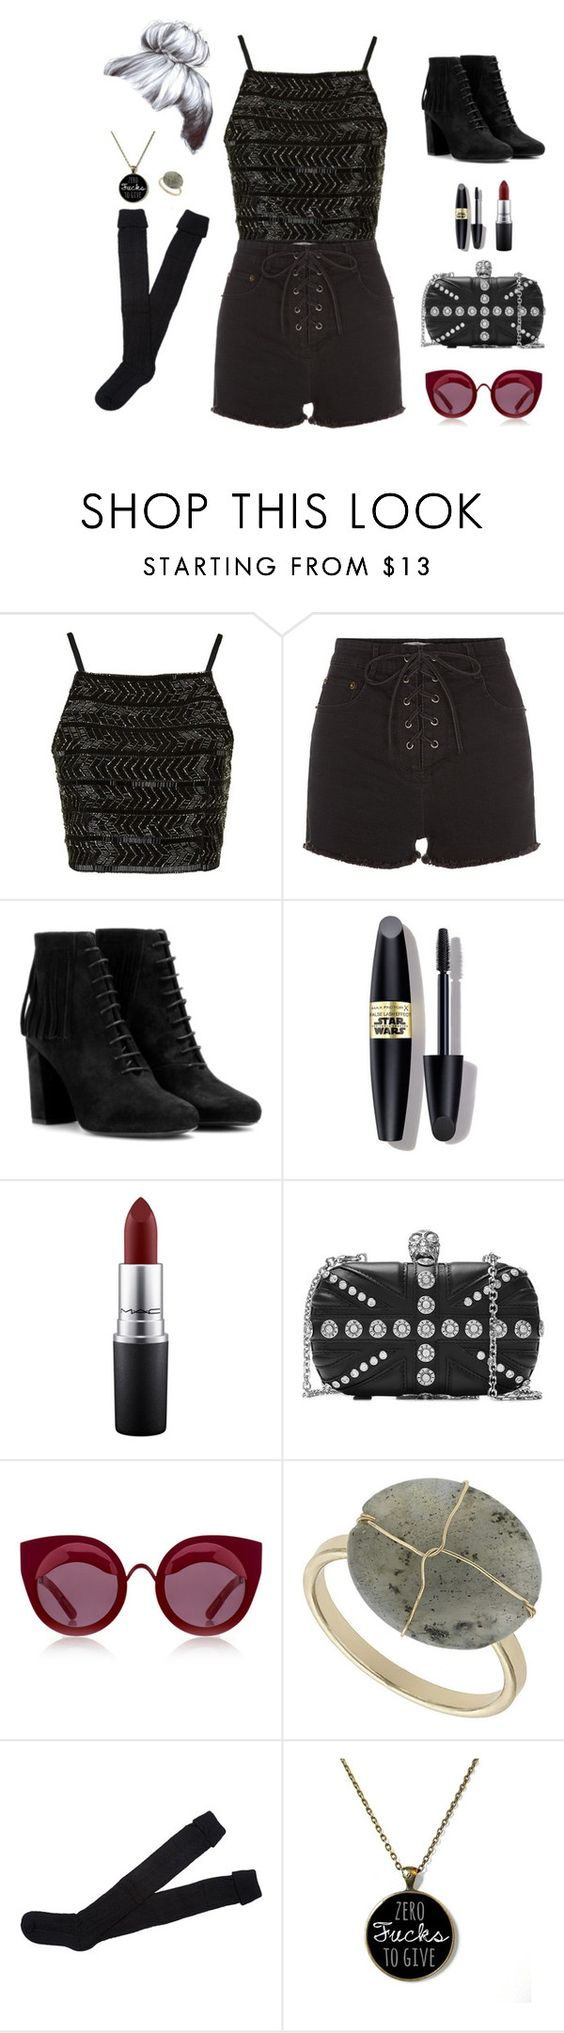 """Untitled #93"" by resilient-tophat ❤ liked on Polyvore featuring Topshop, Yves Saint Laurent, Max Factor, MAC Cosmetics, Alexander McQueen, House of Holland and KEEP ME"